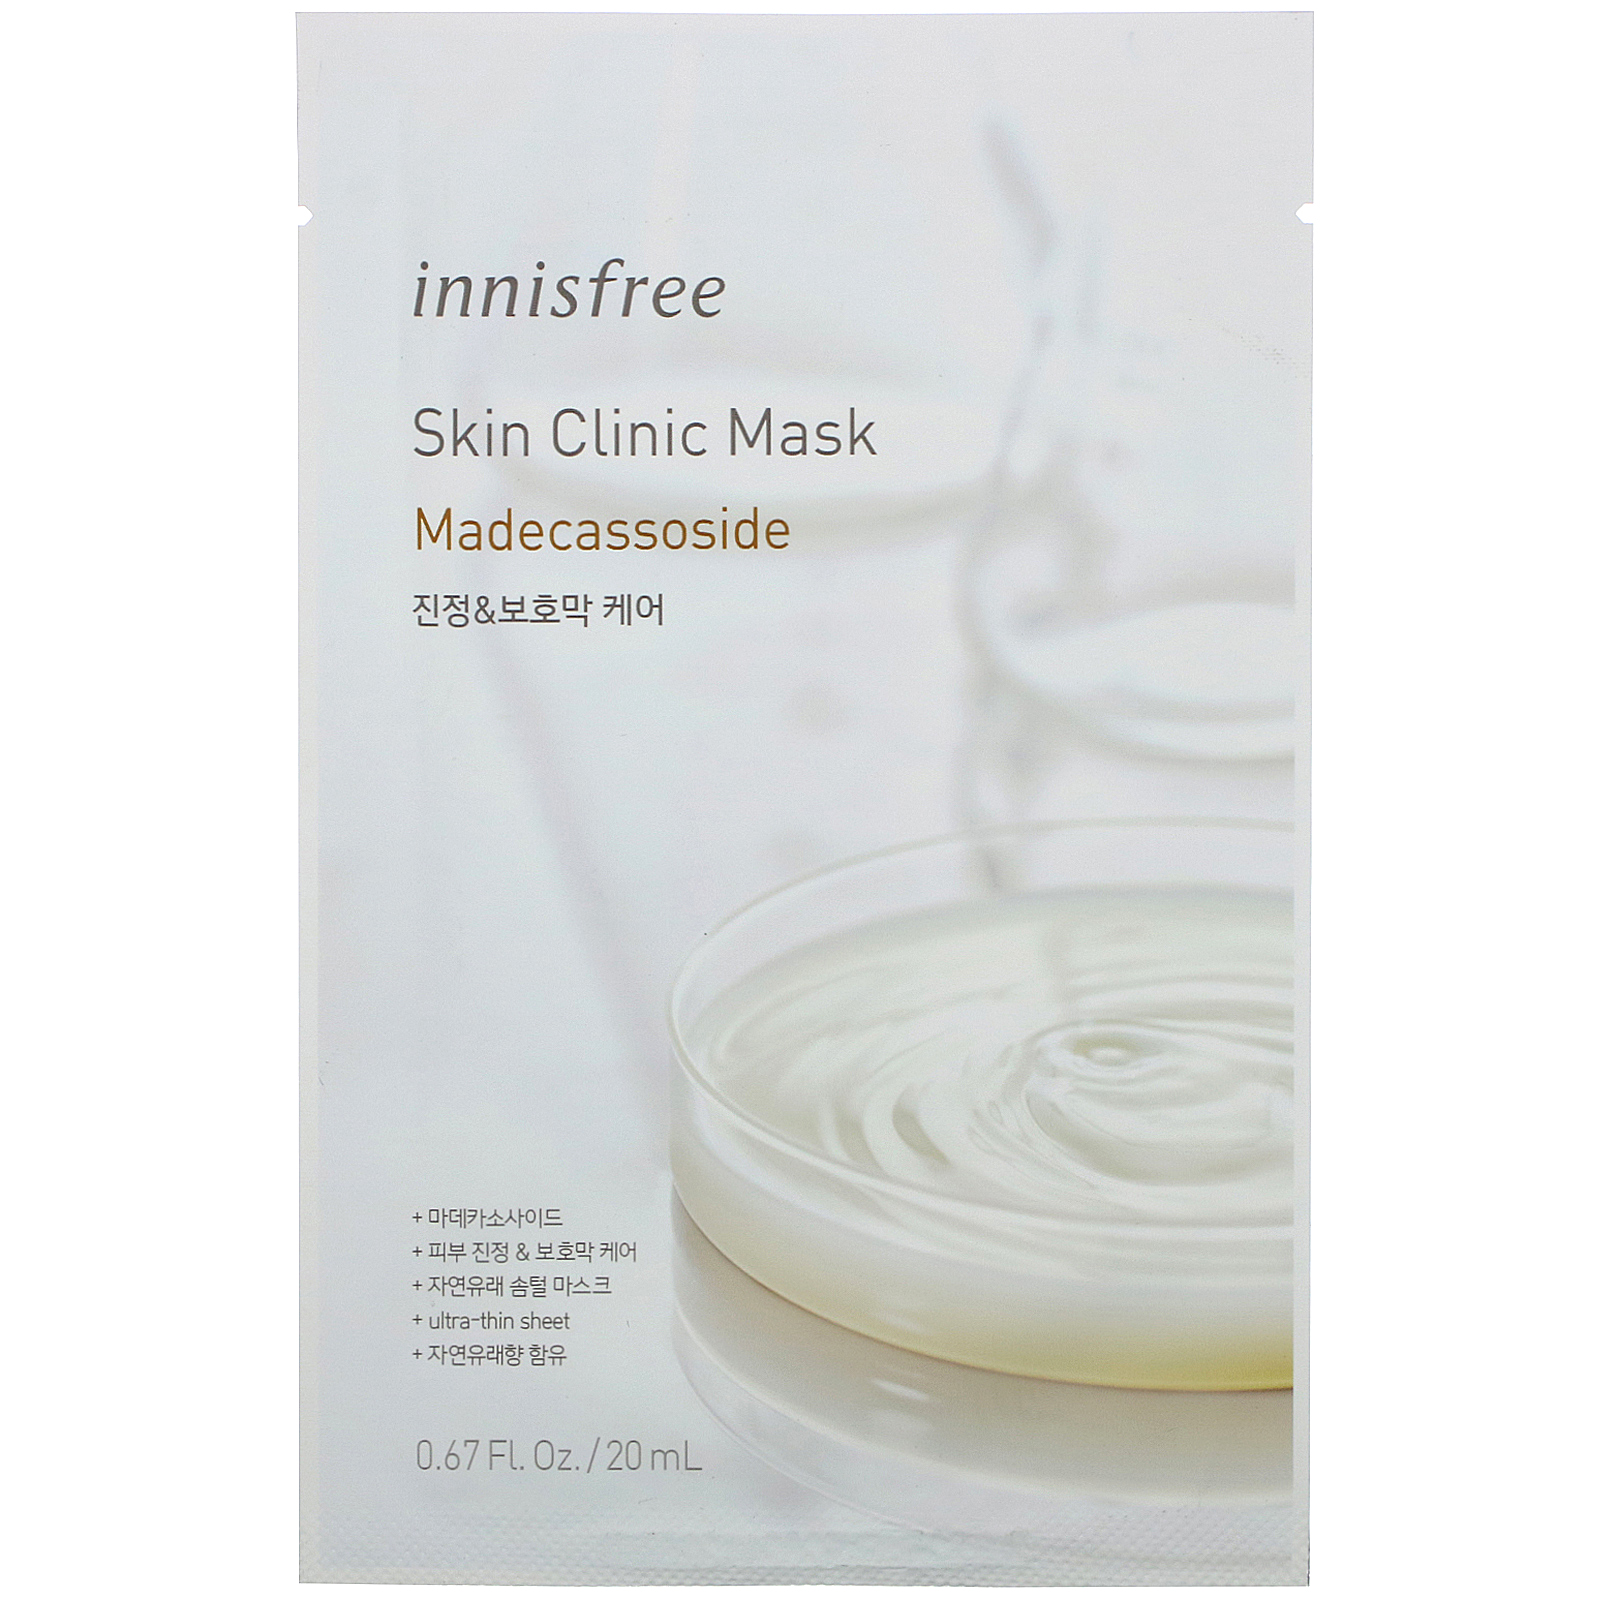 Innisfree, Skin Clinic Mask, Madecassoside,  1 Sheet, 0.67 fl oz (20 ml)